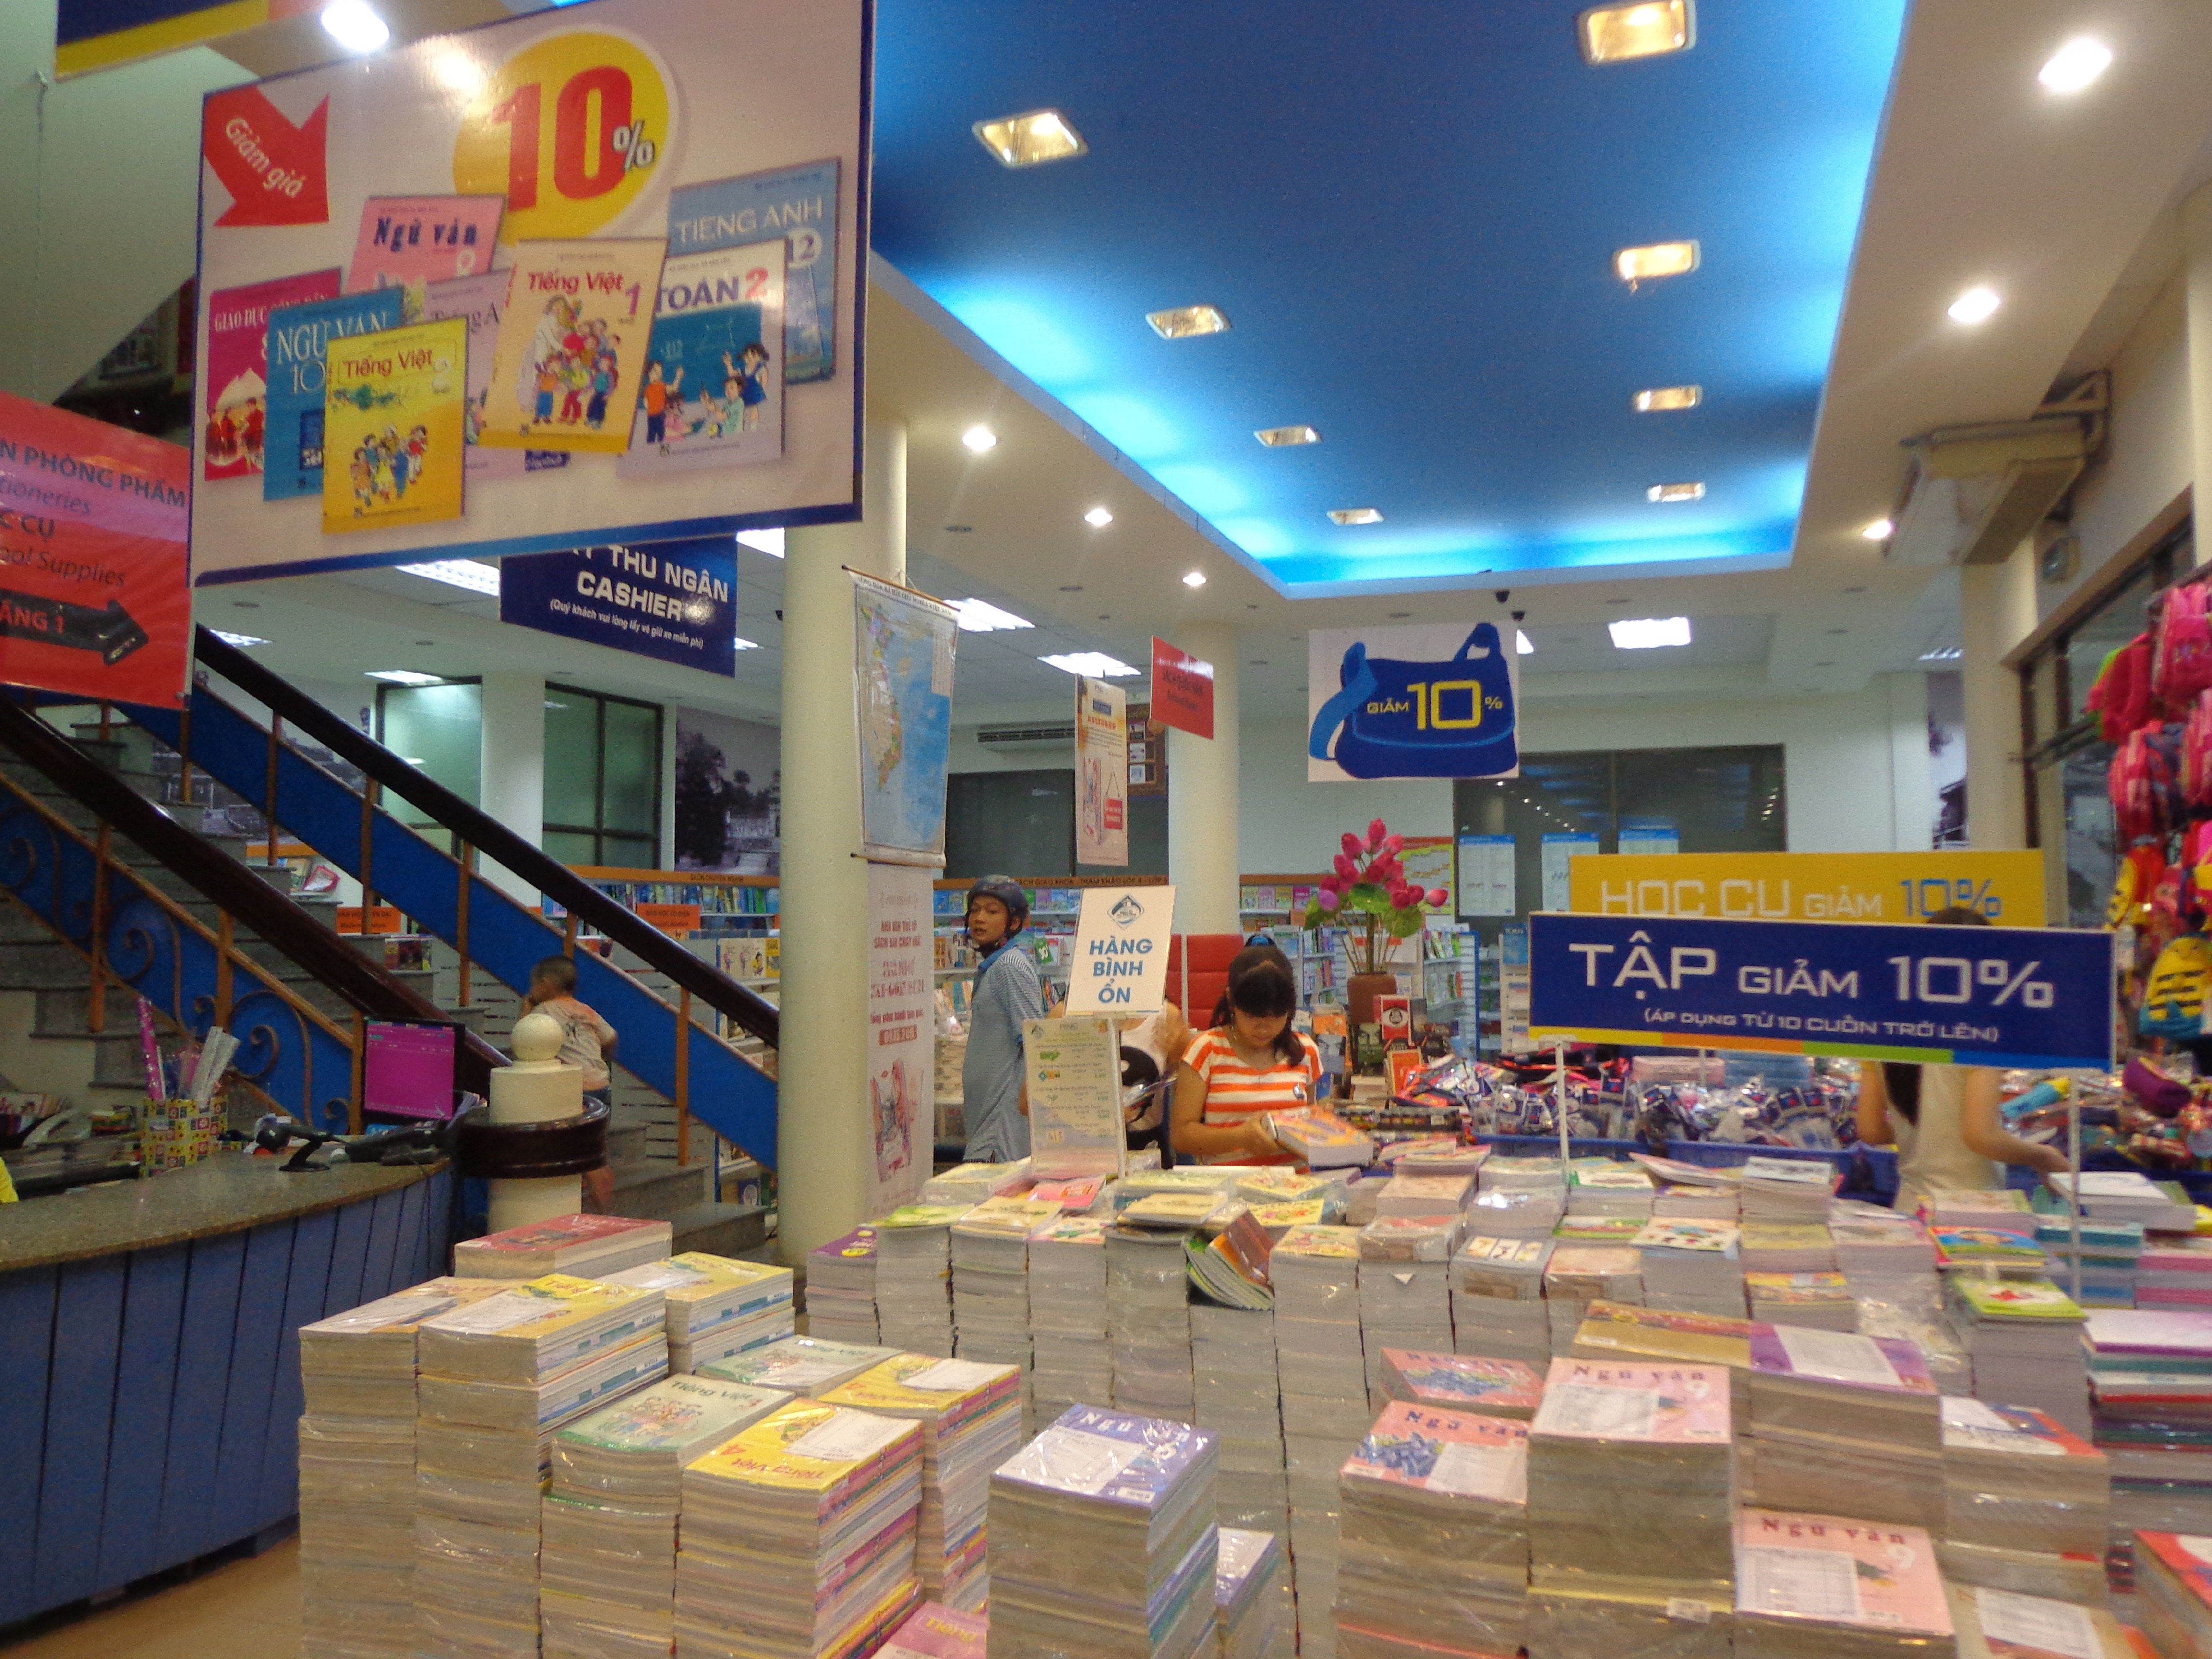 A big bookstore and stationary shop in Hue. We also had some strong Vietnamese coffee here.